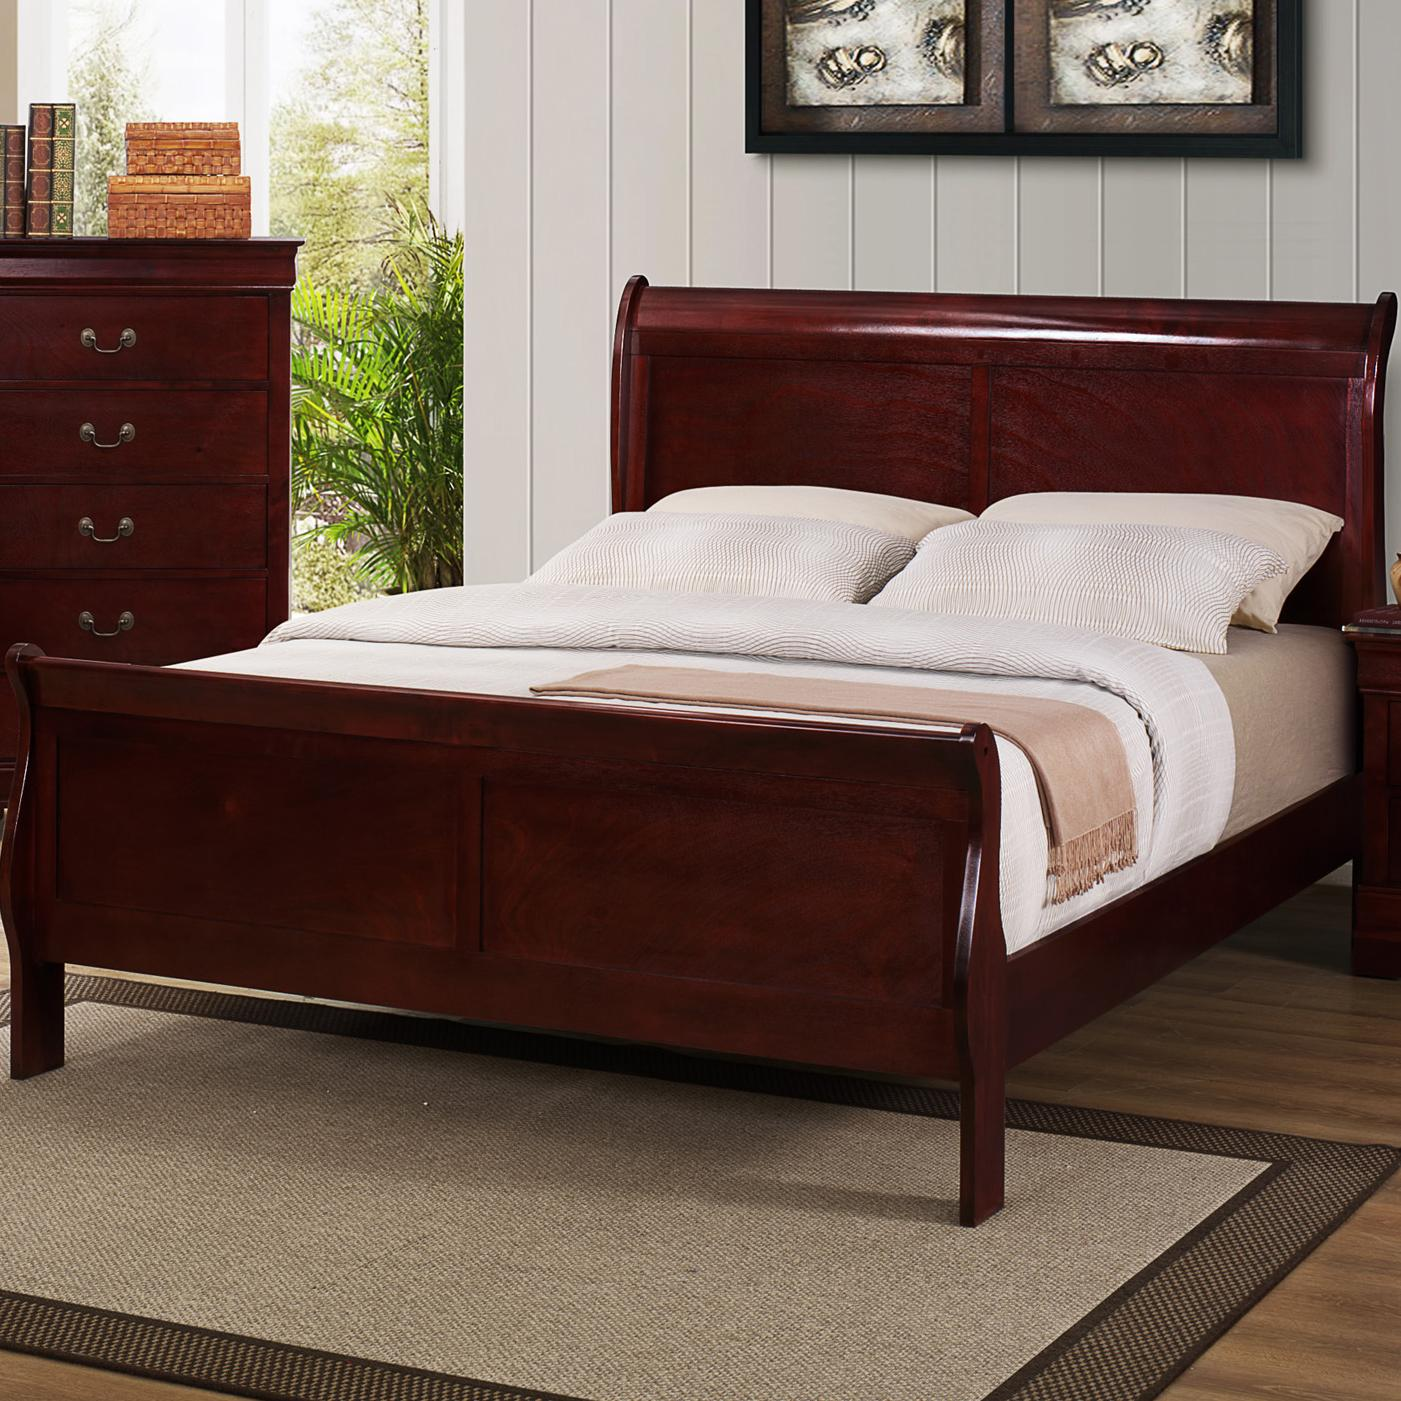 CM B3800 Louis Phillipe Queen Sleigh Bed - Item Number: B3800-Q-HB+FB+RL